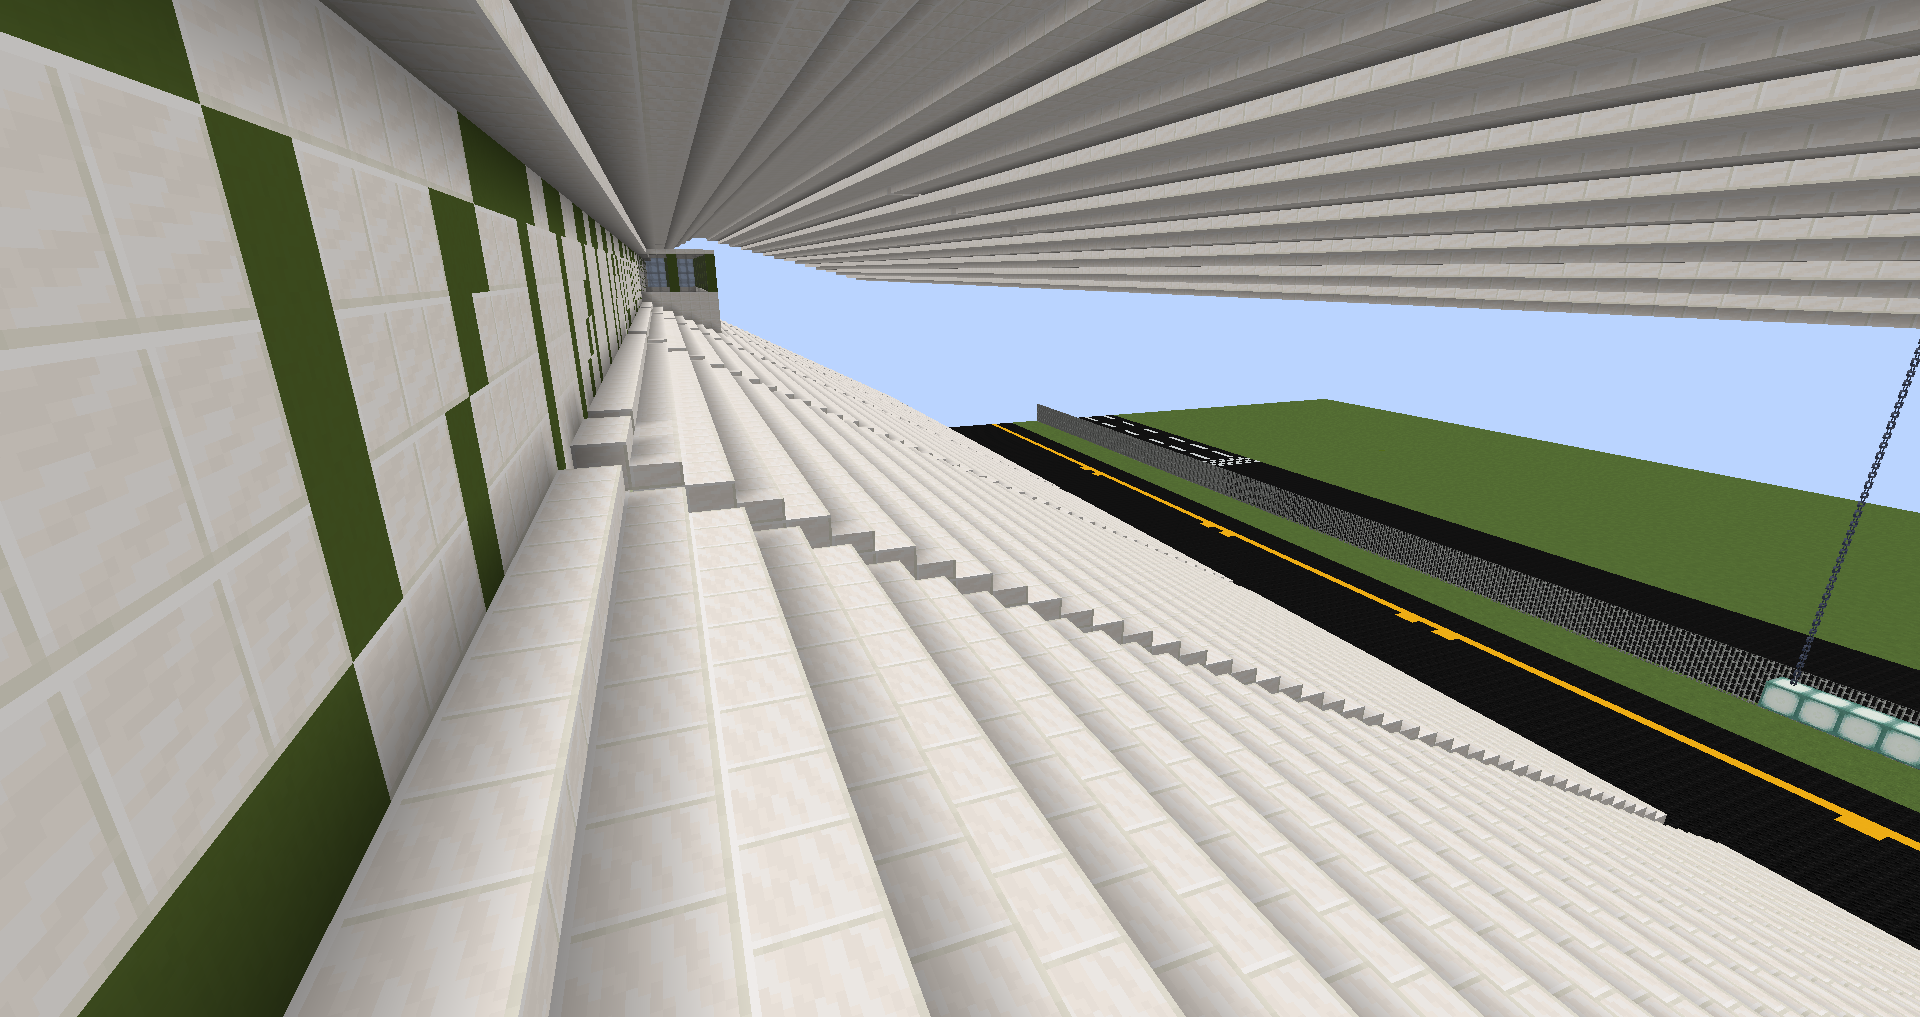 Minecraft version of stadium seating at Evergreen State Fairgrounds.